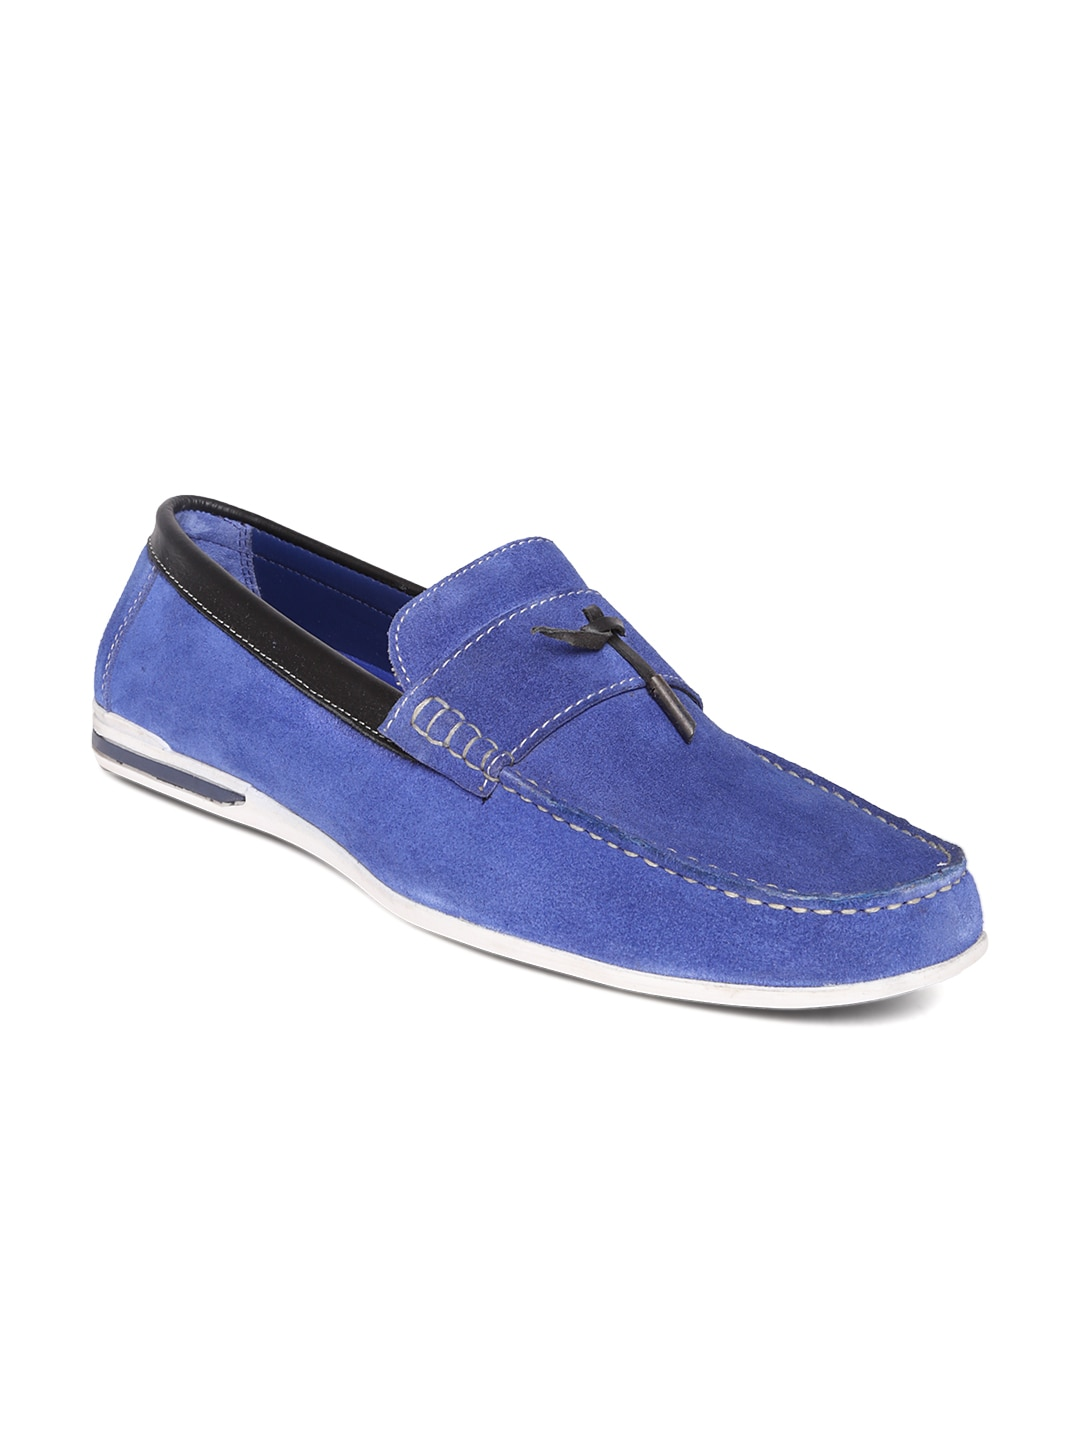 bata casual shoes at best price in india 09 11